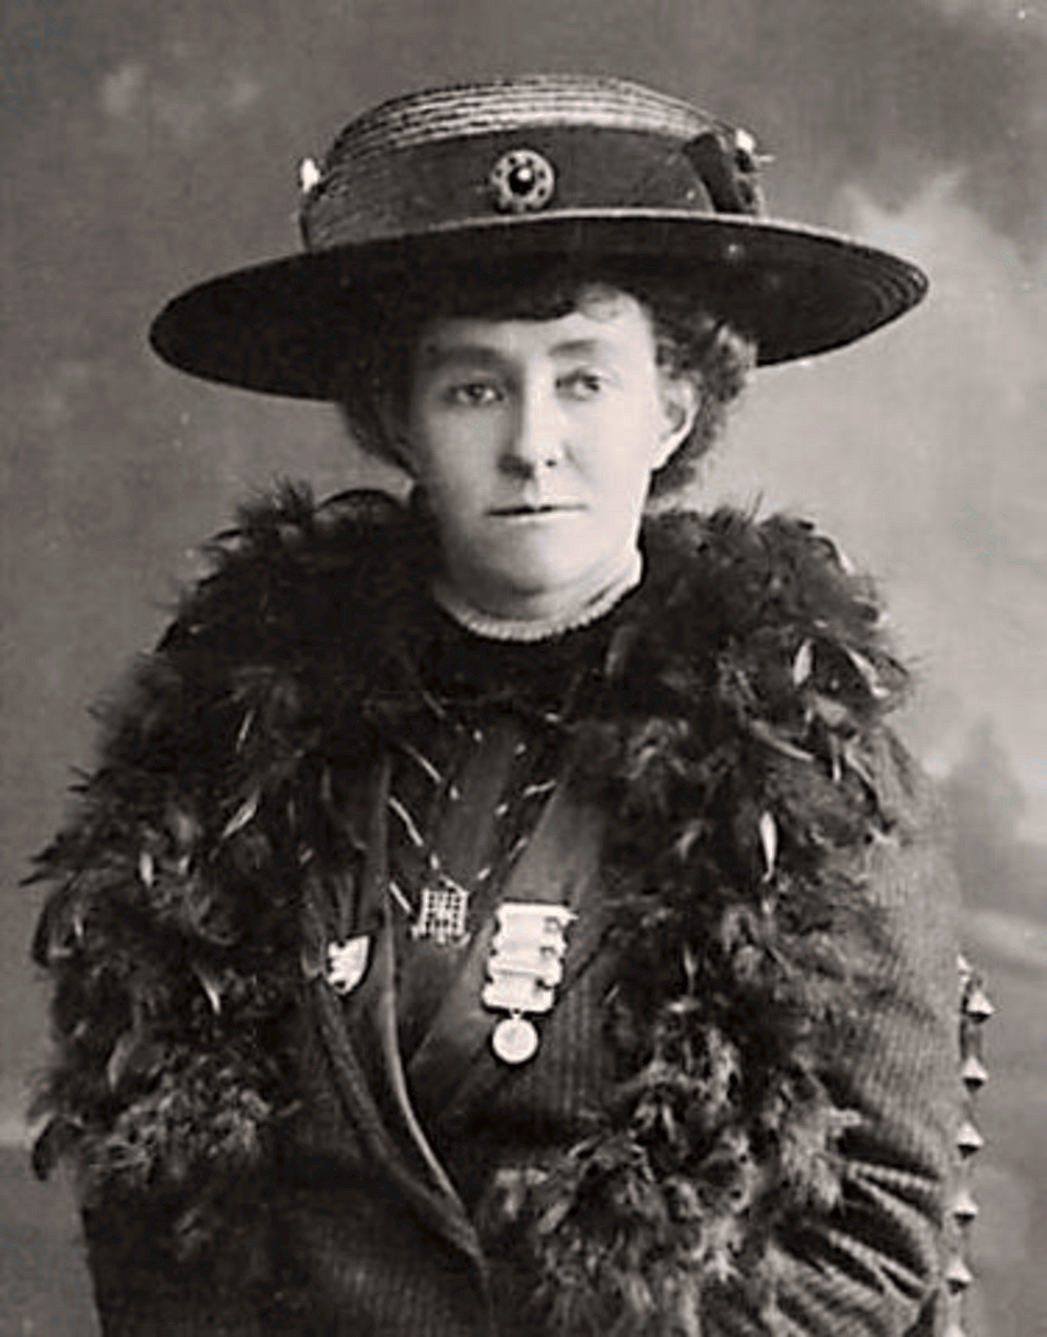 The suffragette who hid in the House of Commons on census night